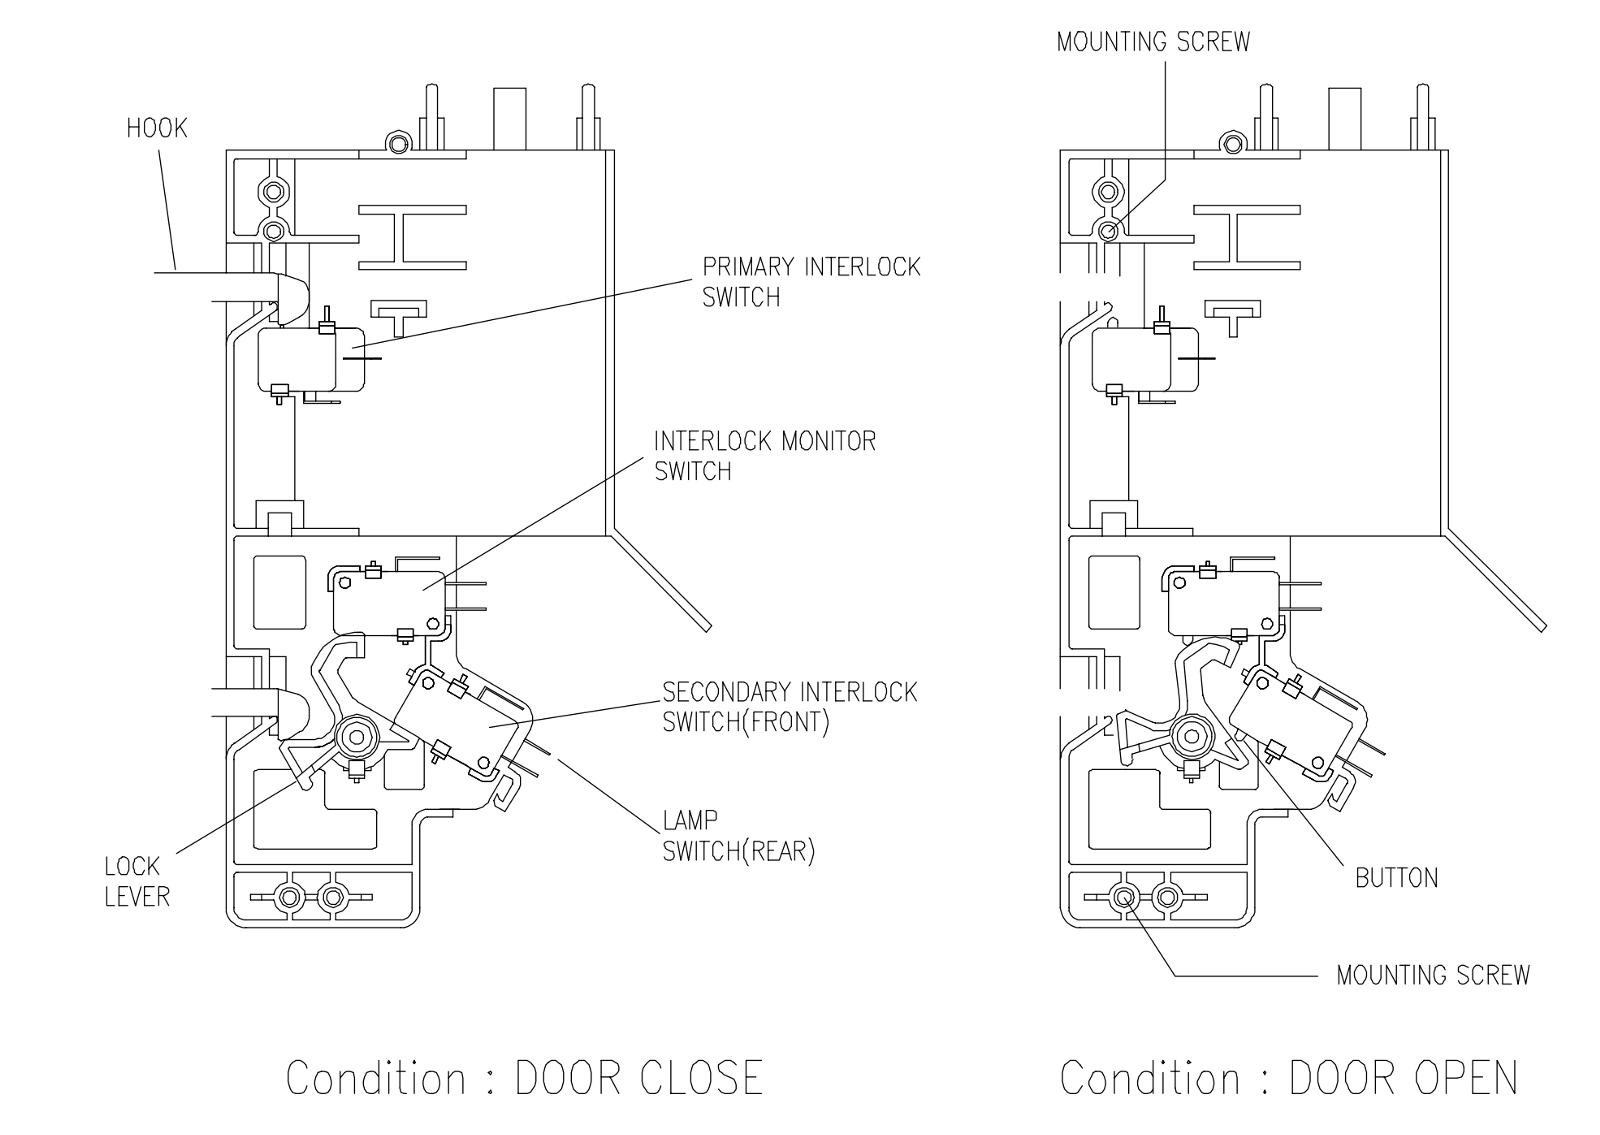 southbend convection oven wiring diagram